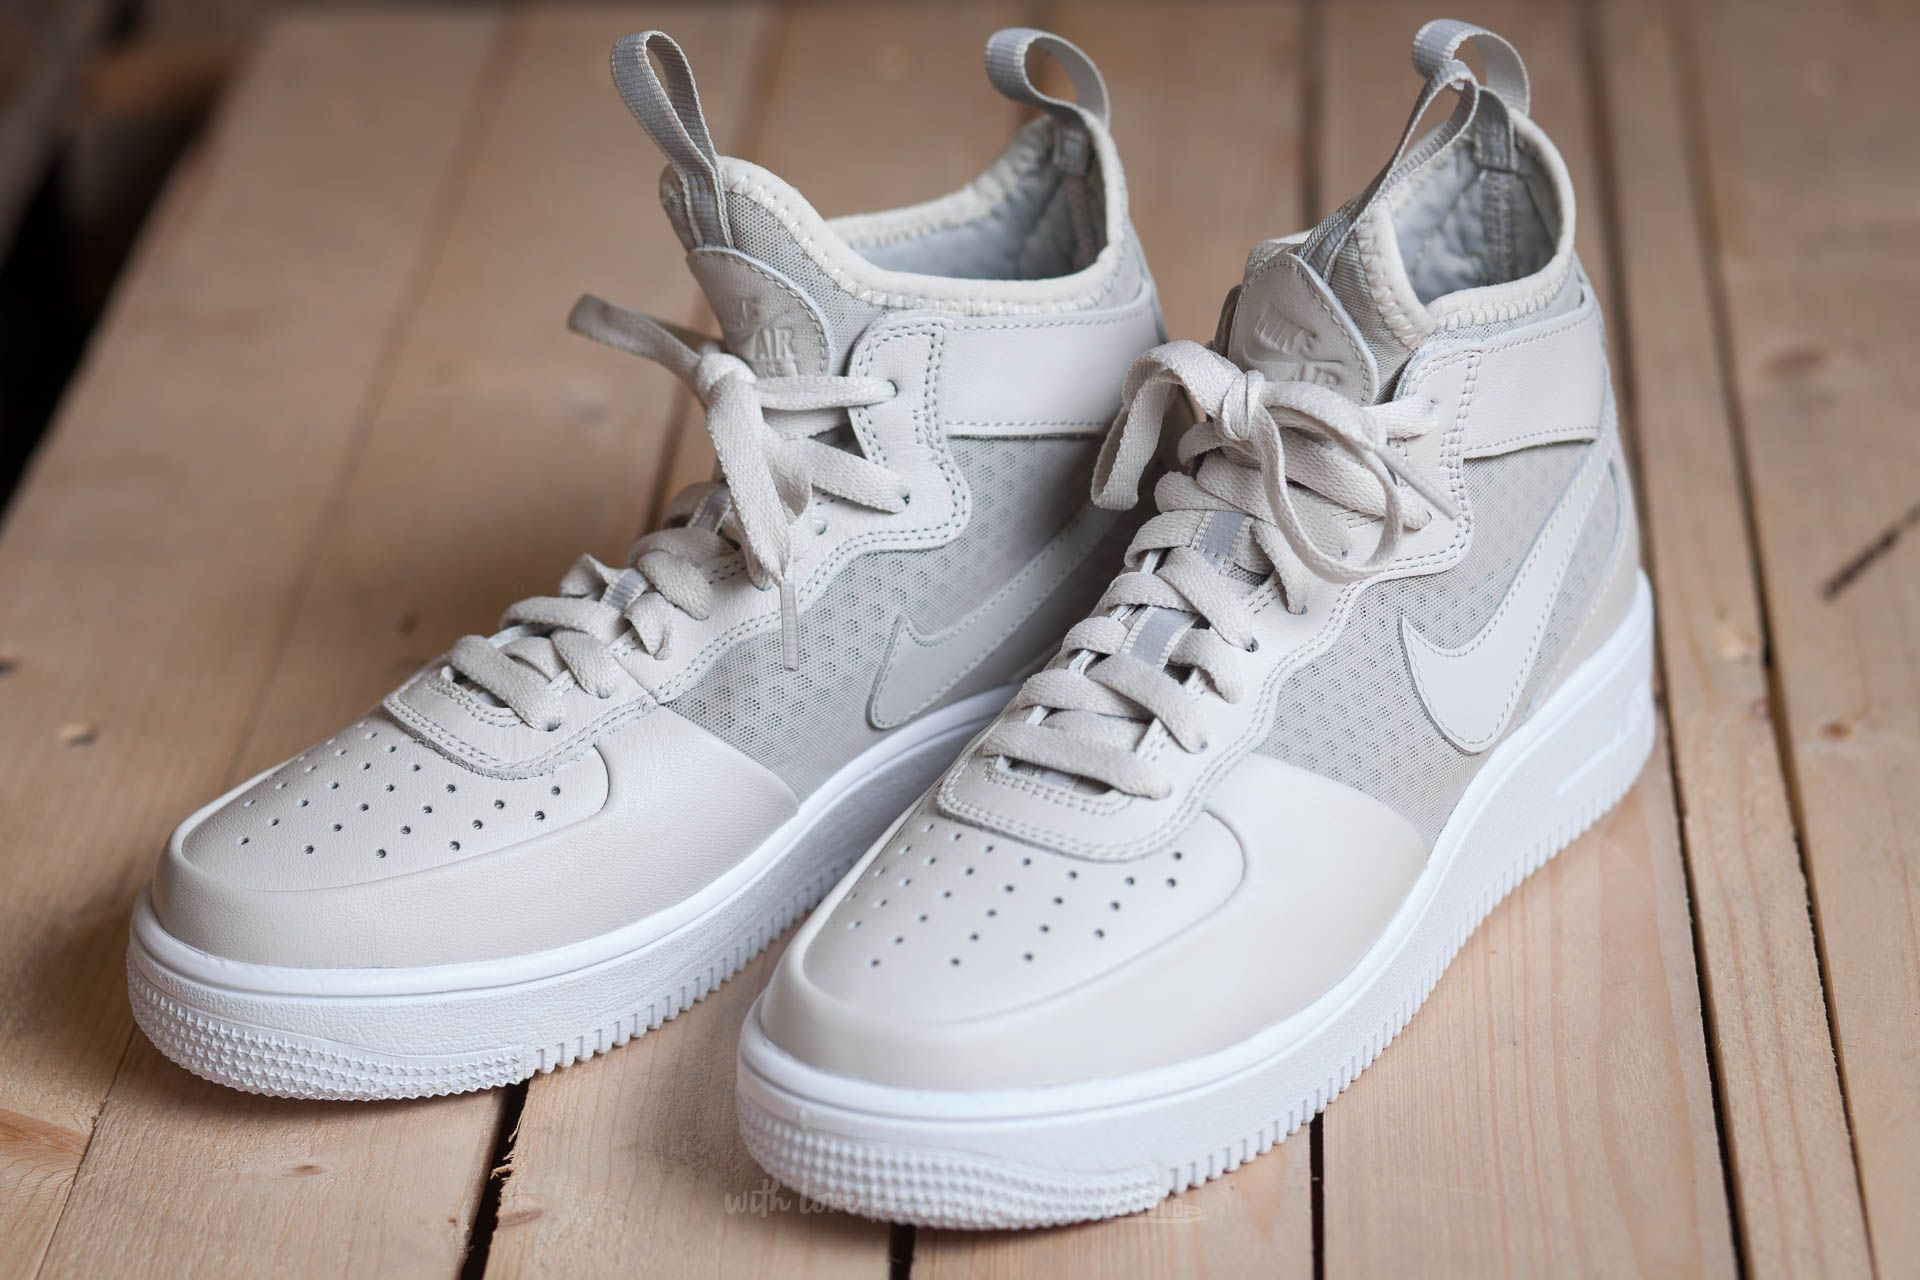 Nike W Air Force 1 Ultraforce MID Light Bone Light Bone White | Footshop